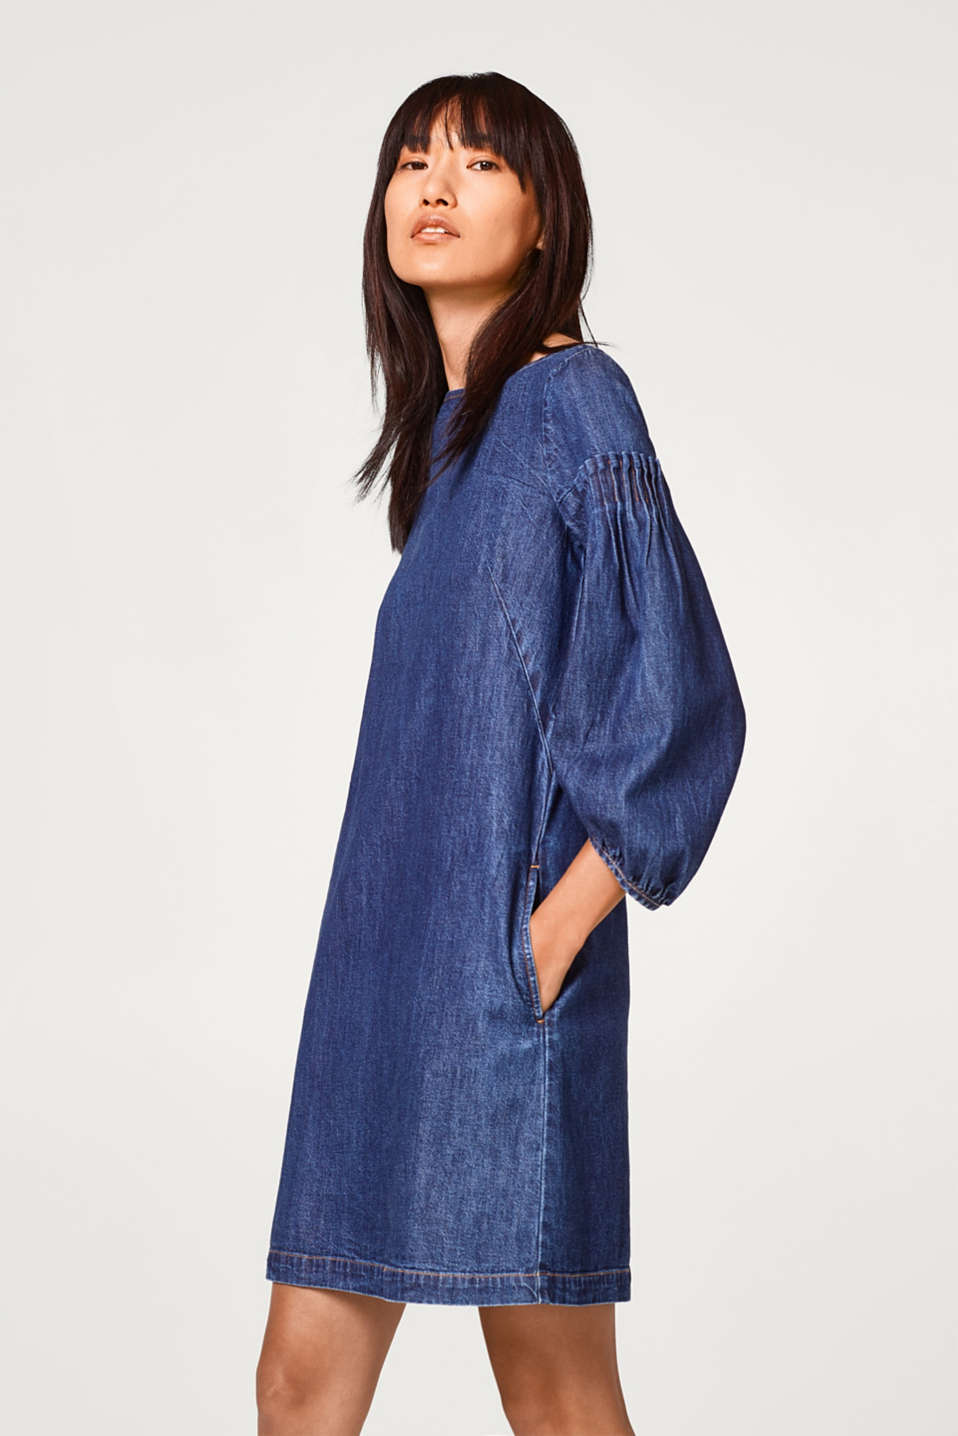 2018 New Sale Online Balloon Sleeve Denim Dress - Blue Esprit Discount Limited Edition TXaNBG4Icy